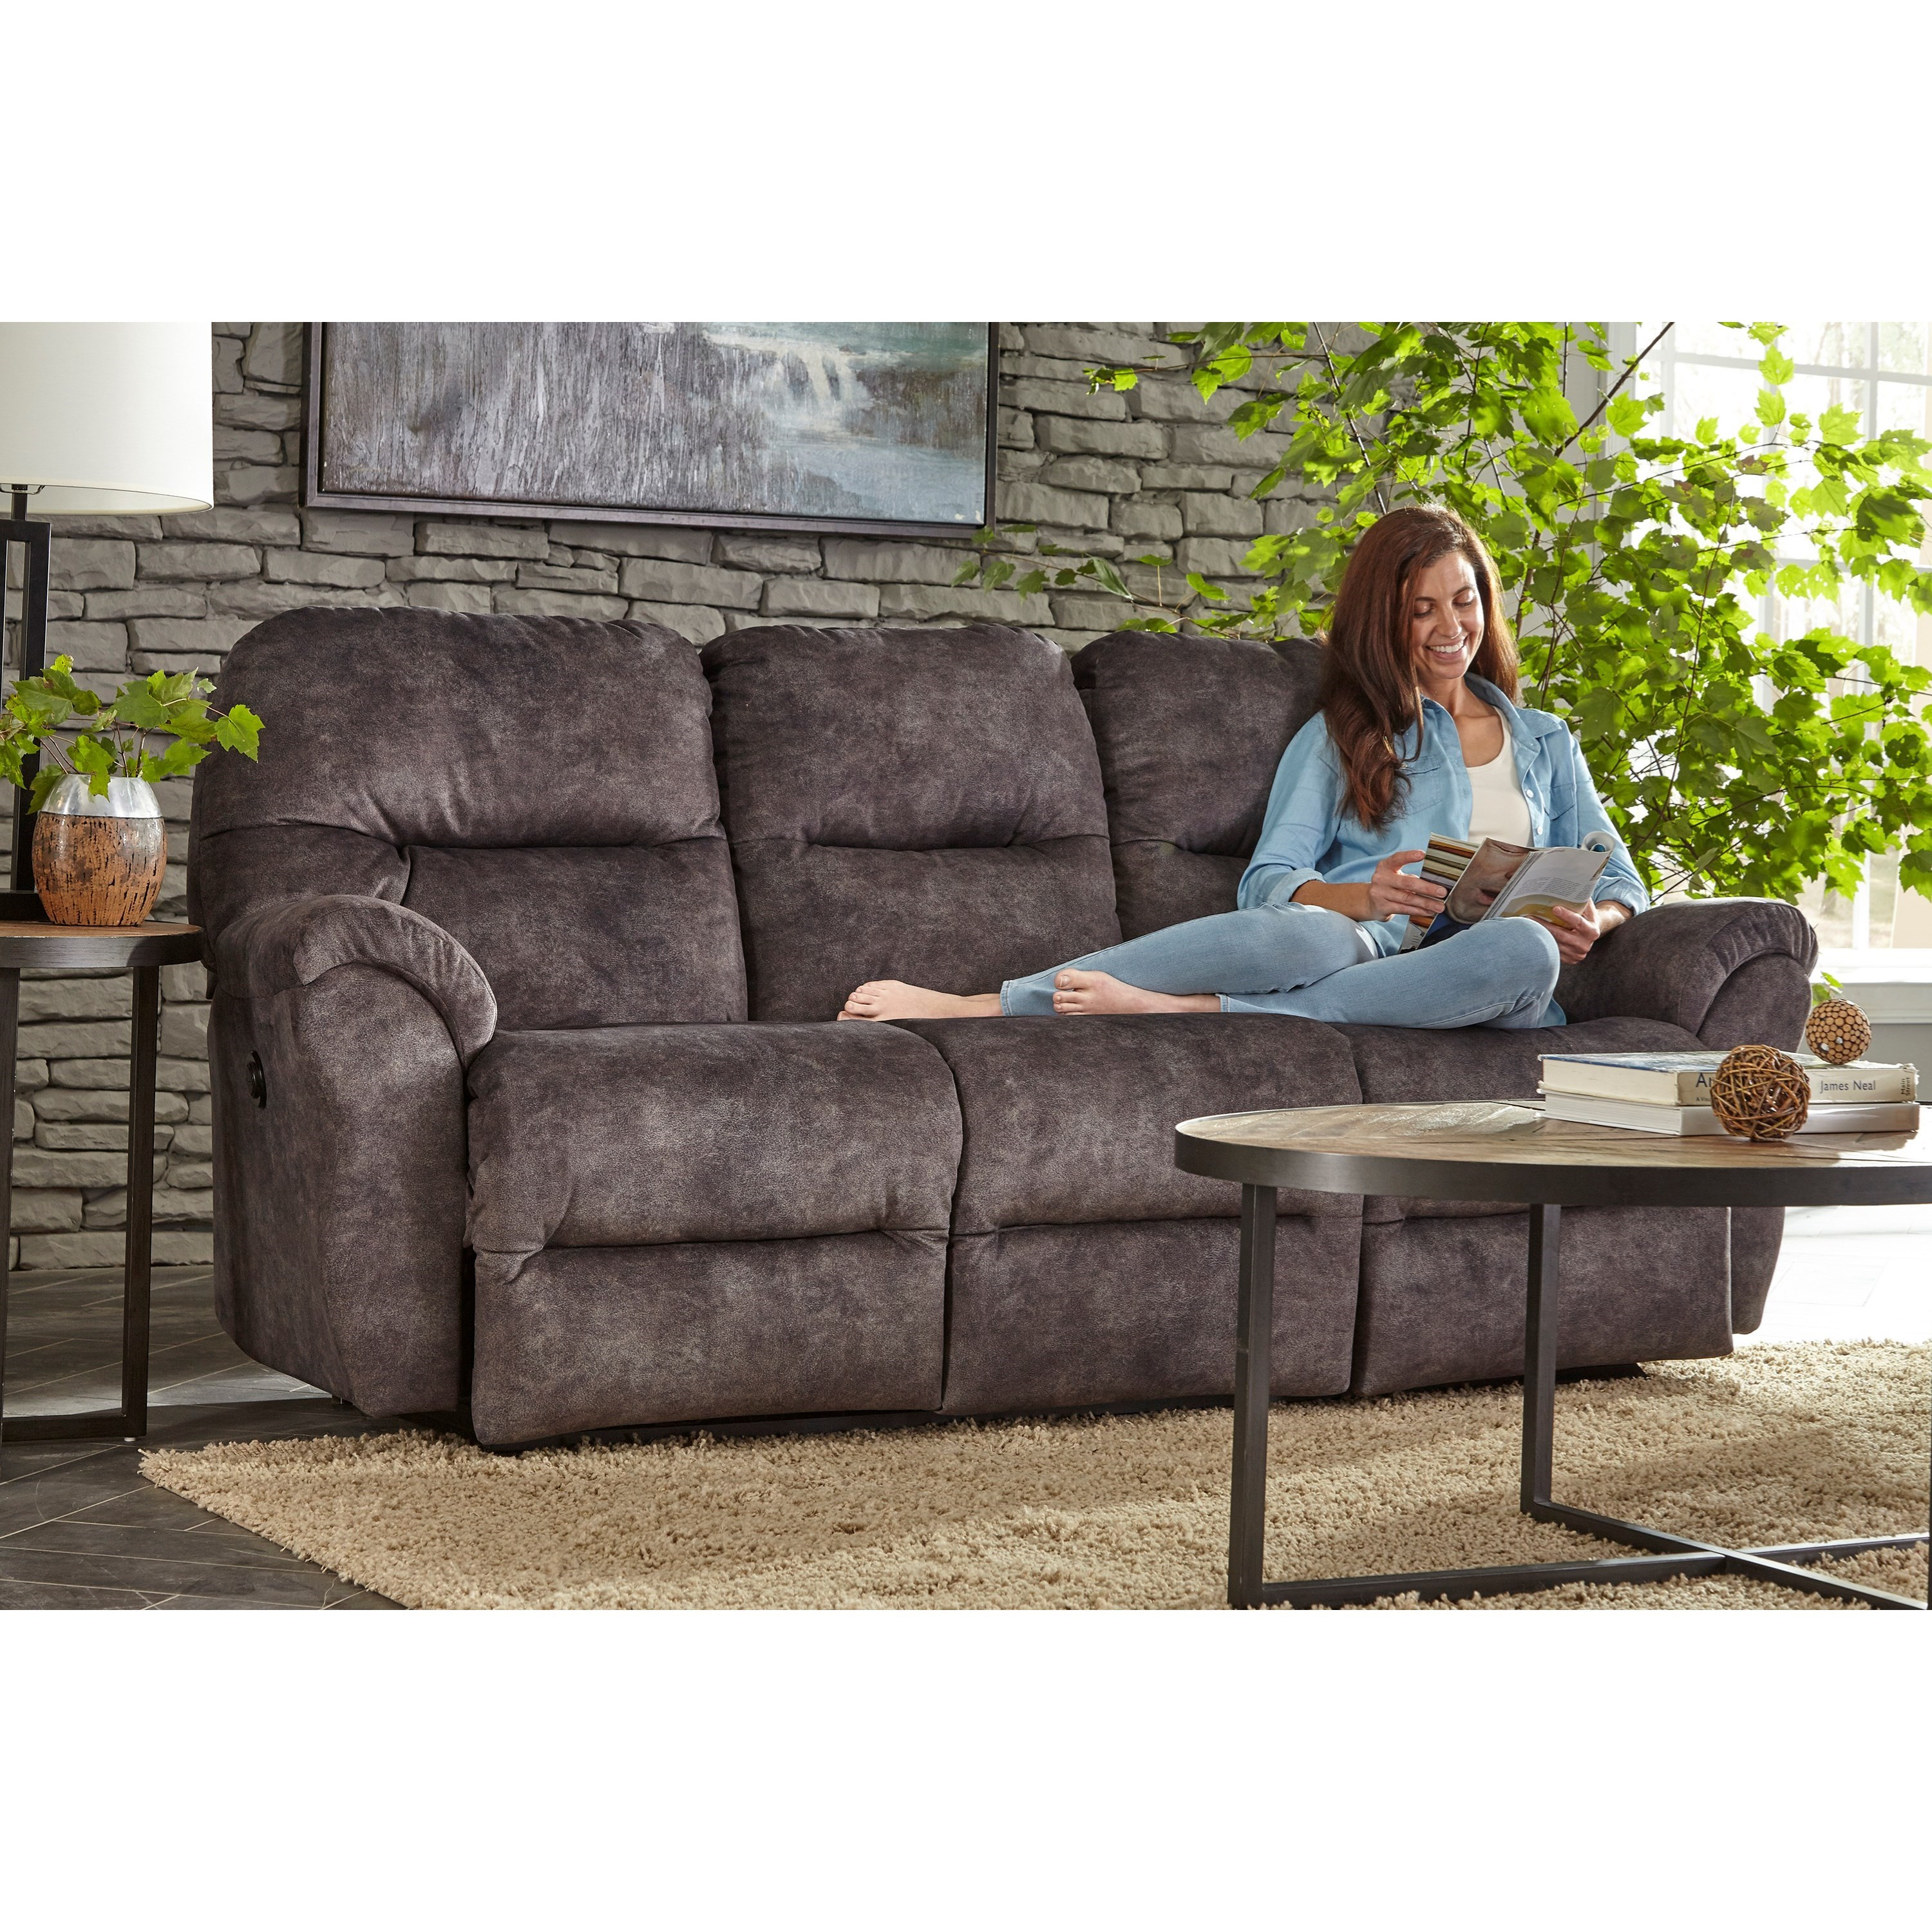 Vendor 411 bodie s760ra4 reclining sofa becker furniture for Furniture 411